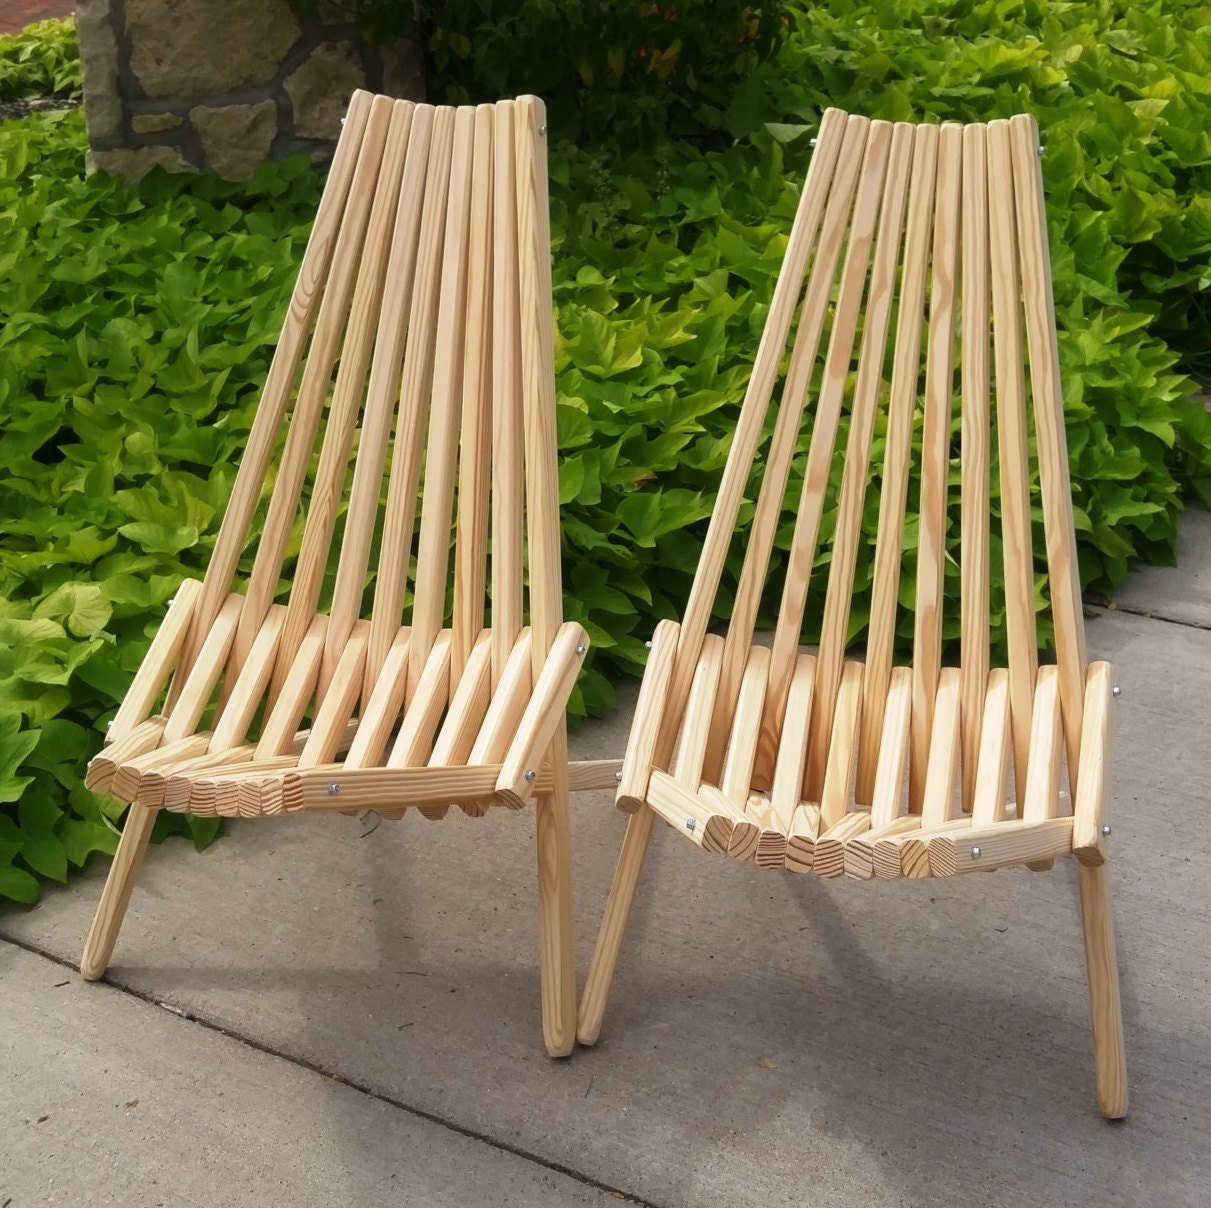 Patio Furniture, Unfinished, Kentucky Stick Chair, Adirondack Chair, Accent  Chair, Belize